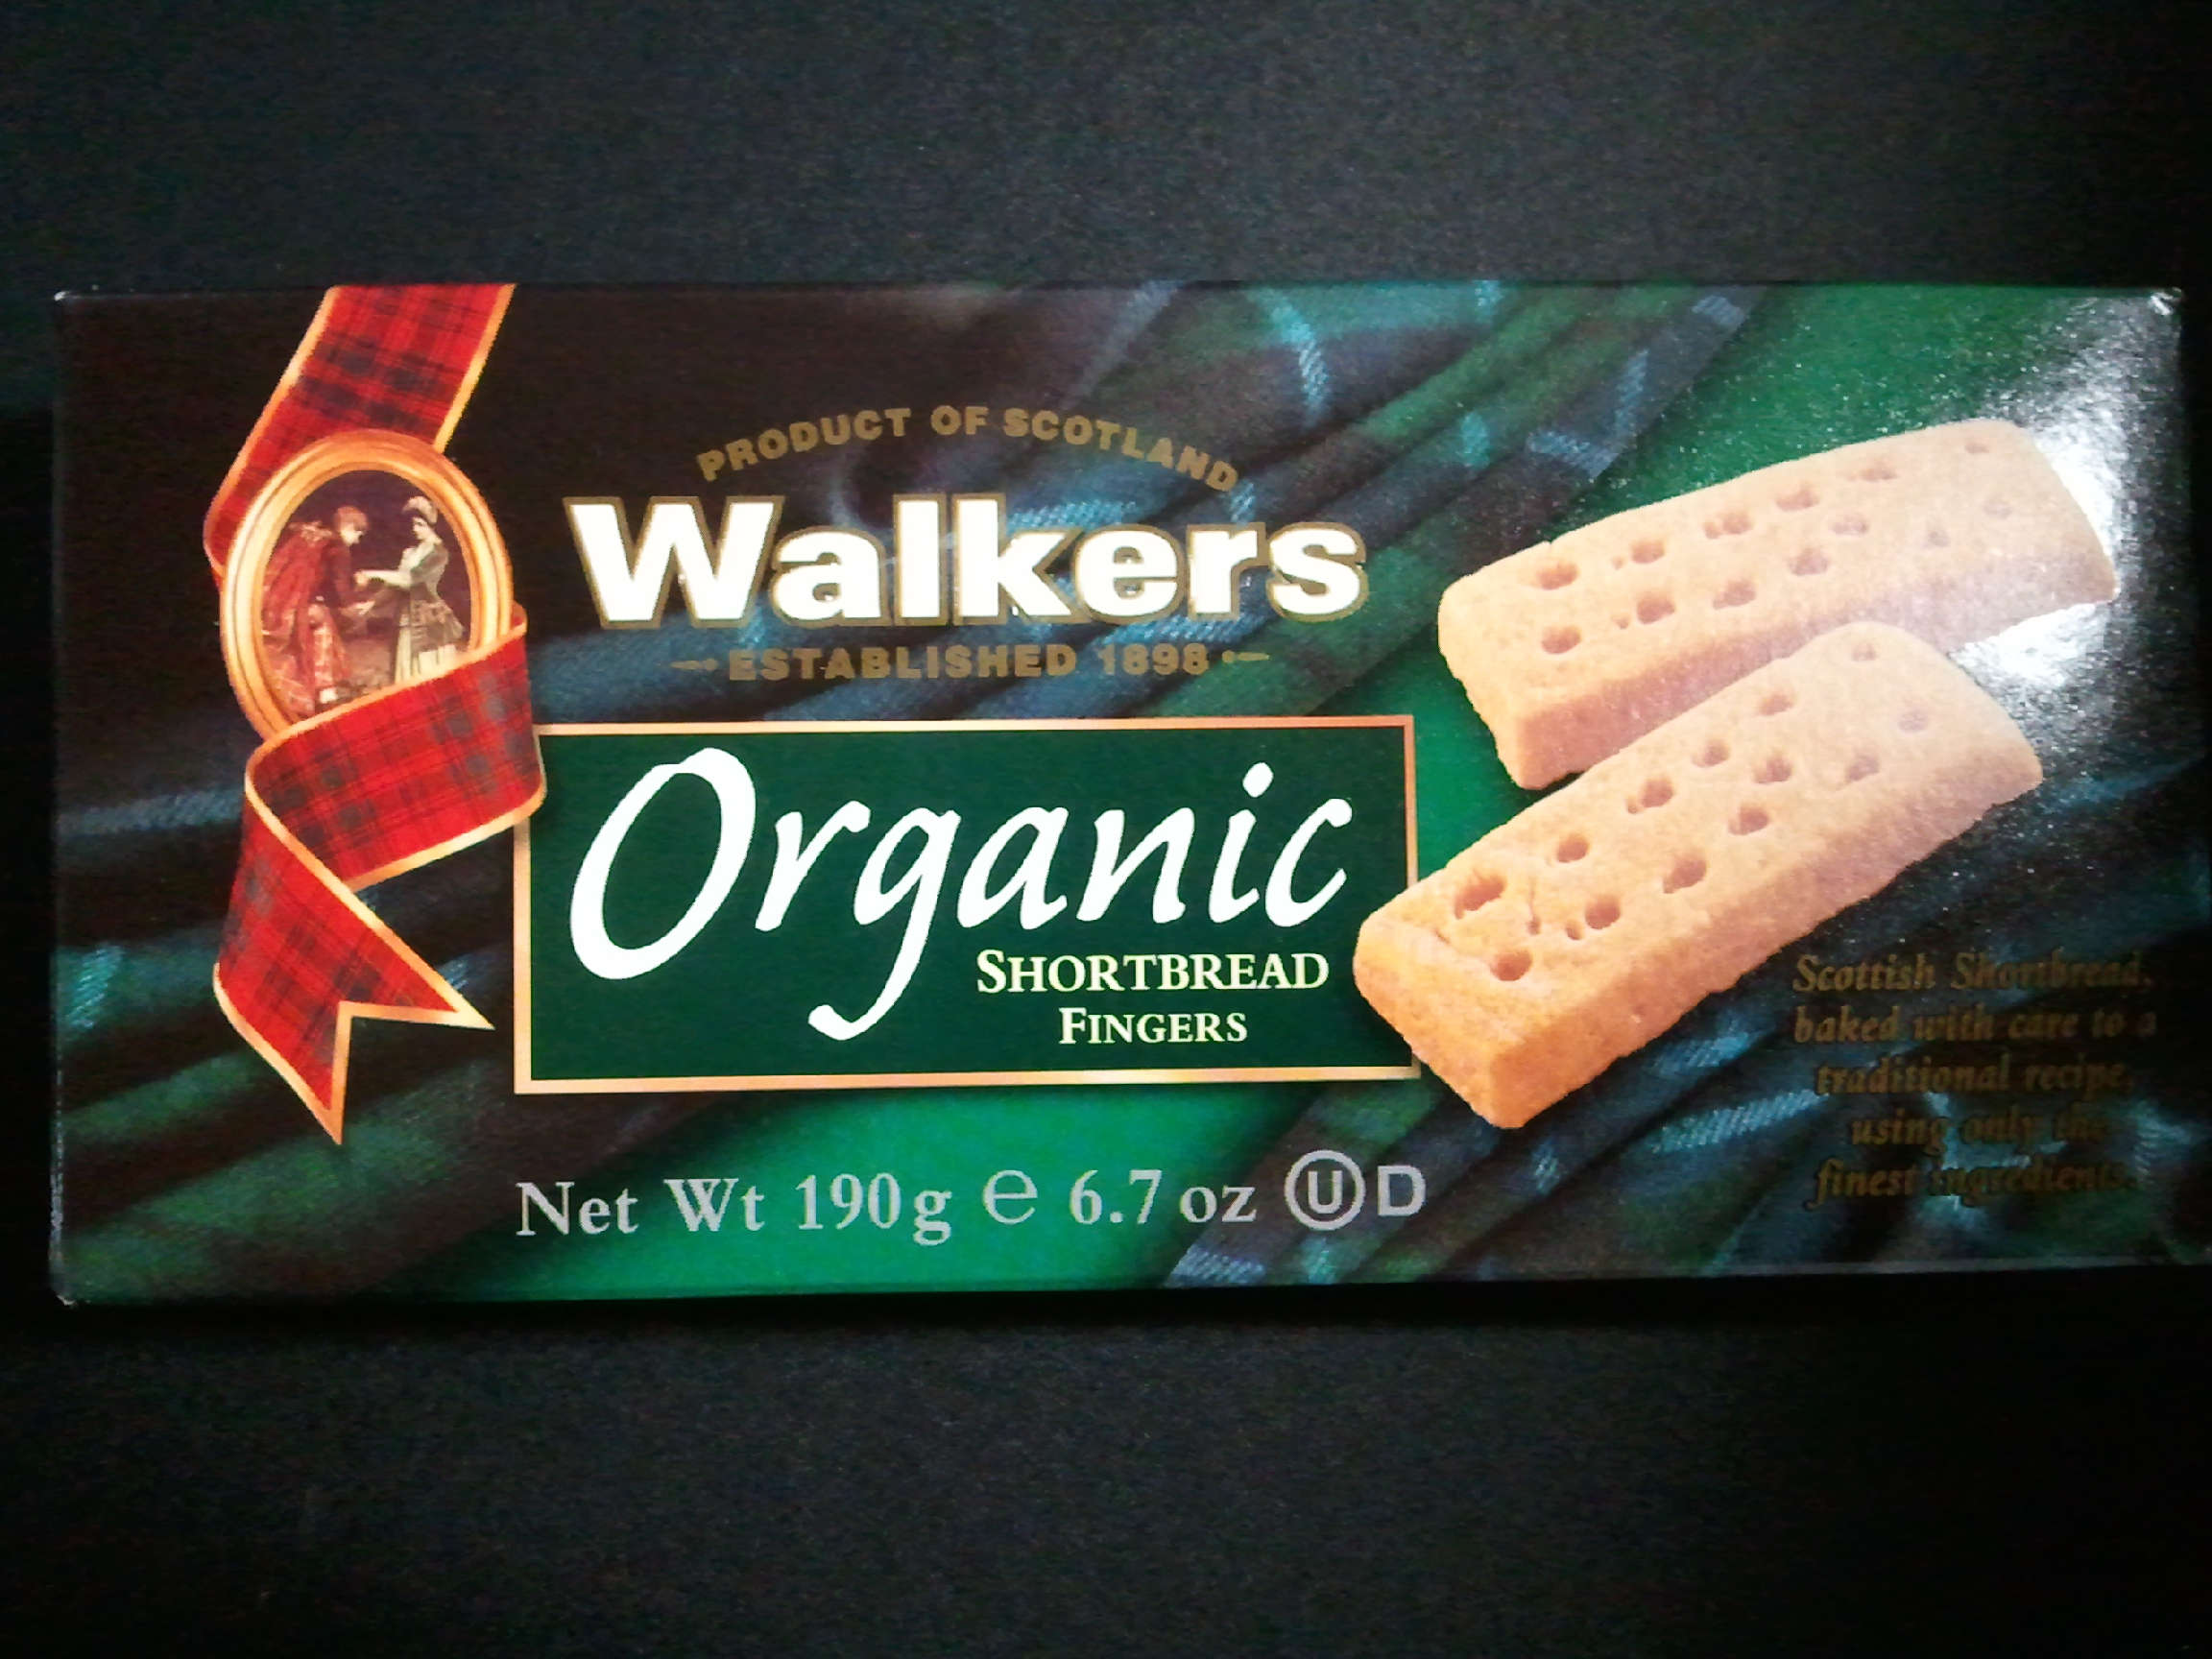 Walkes Organic Shortbread fingers